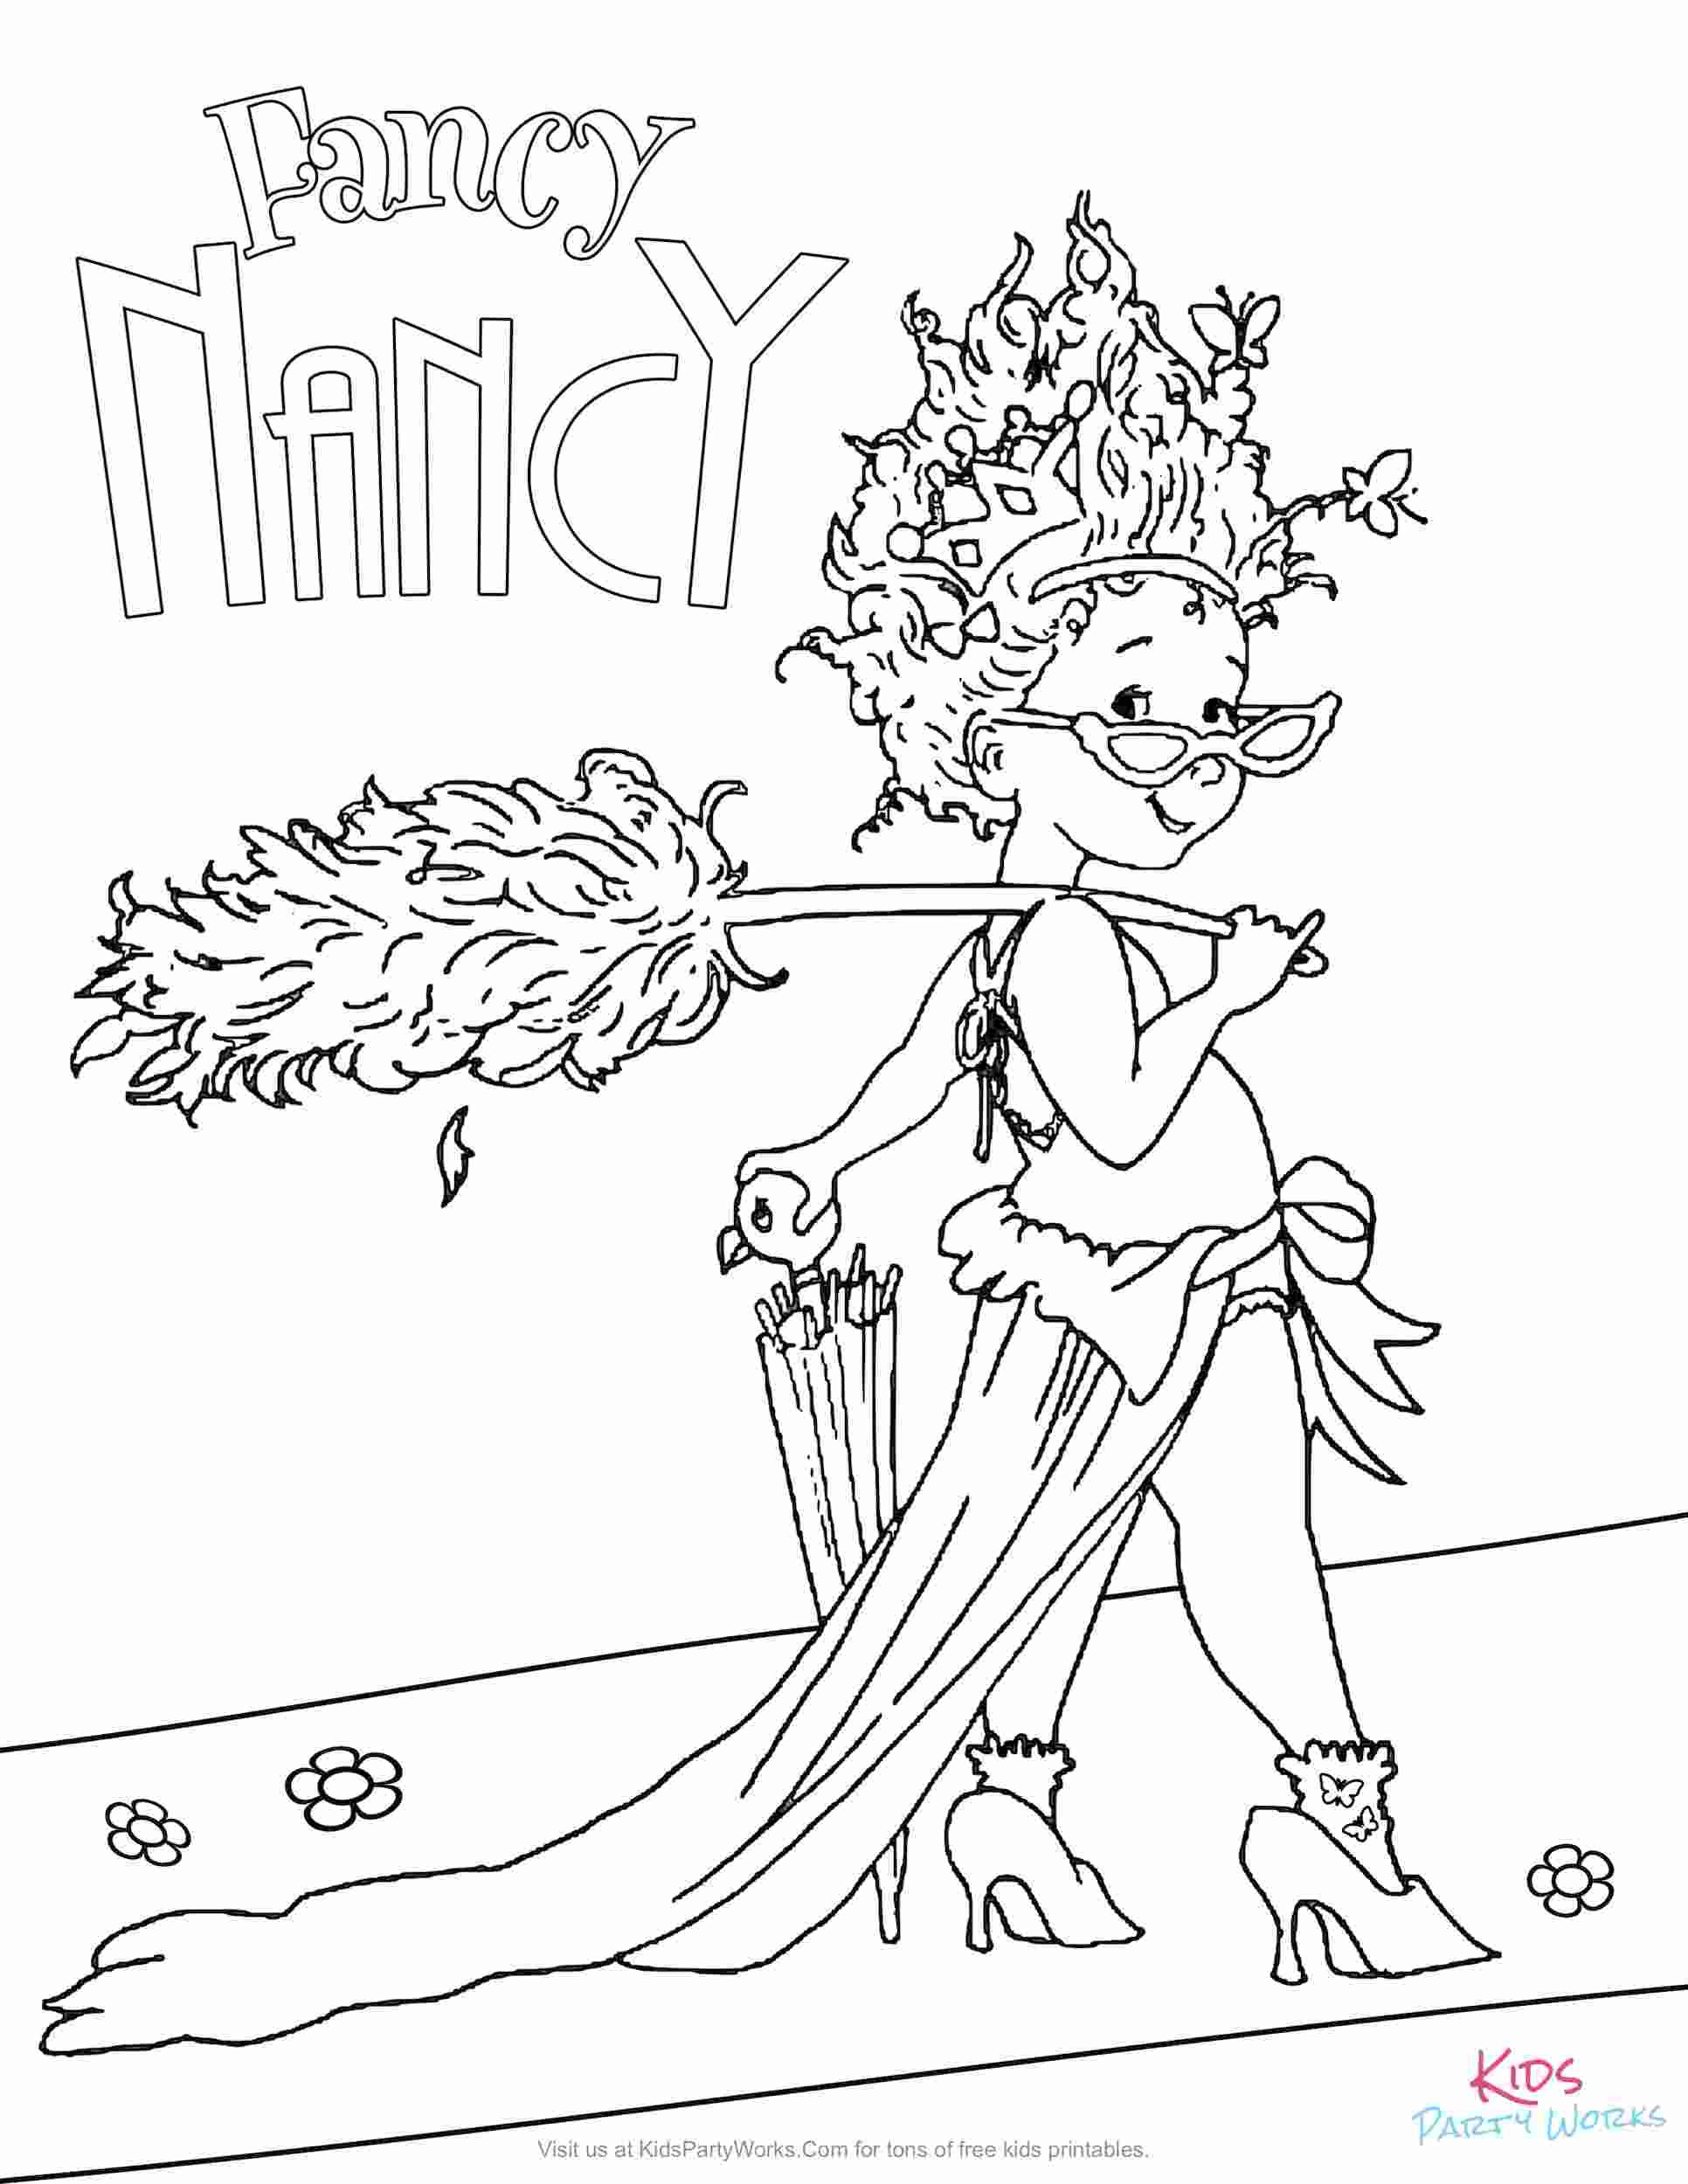 - Coloring Book: Free Printable Fancy Nancy Coloring Pages More